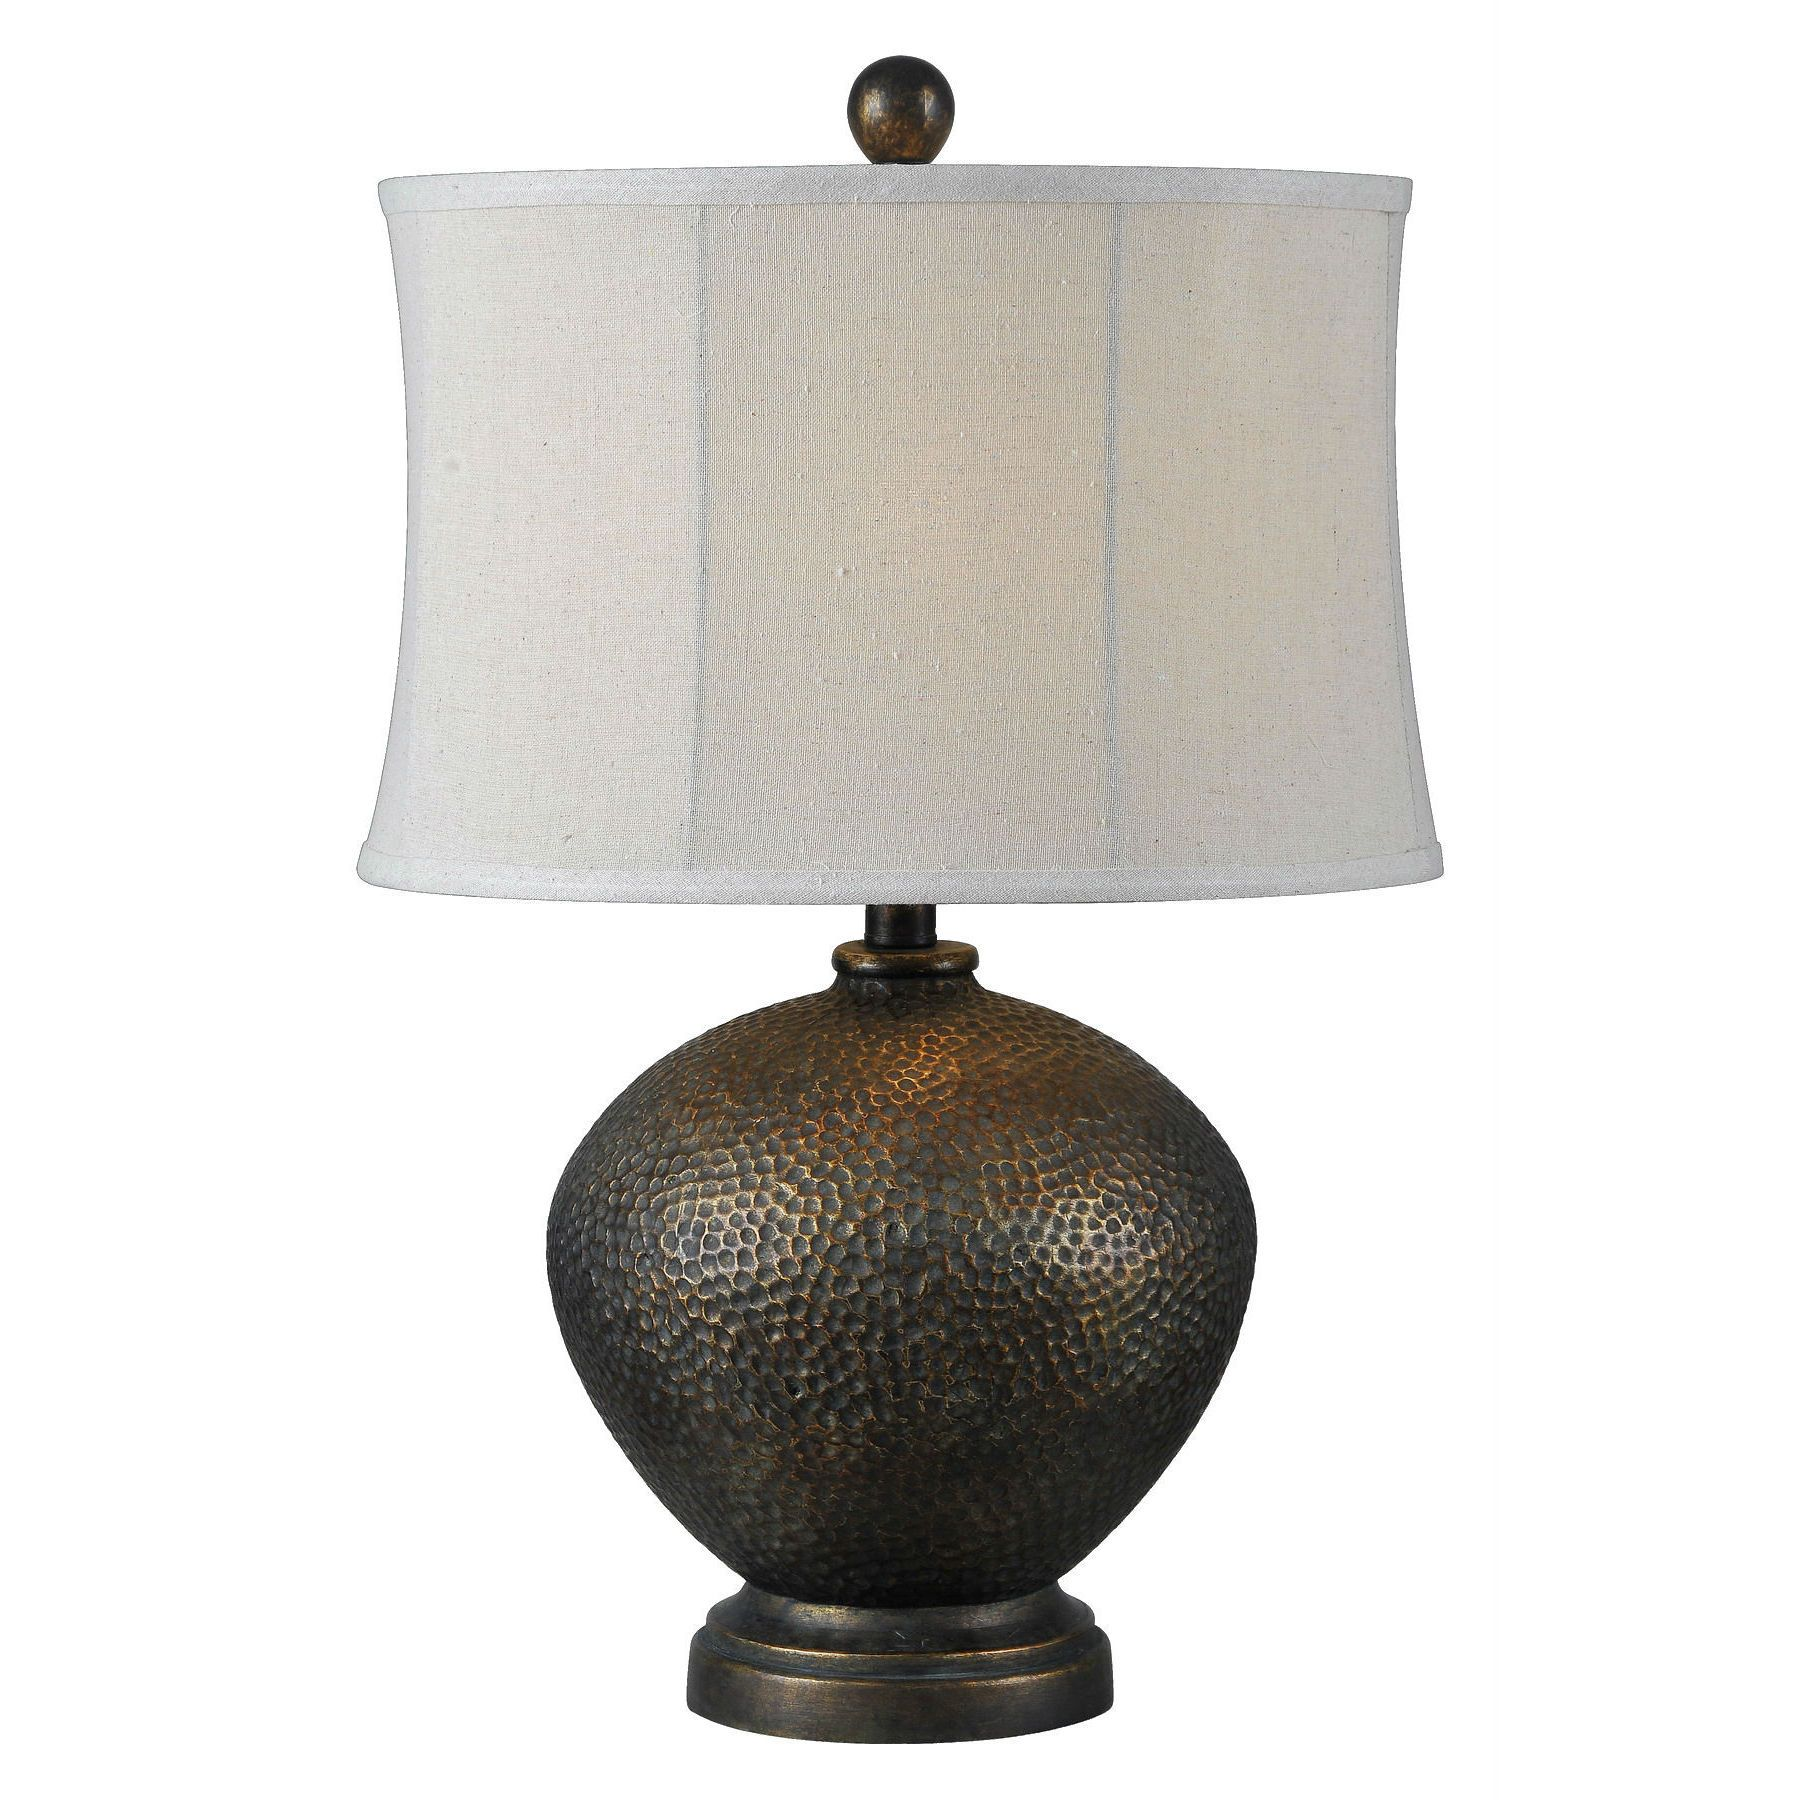 A perfect fit for your lodge collection this hammered metal table a perfect fit for your lodge collection this hammered metal table lamp in oil geotapseo Gallery